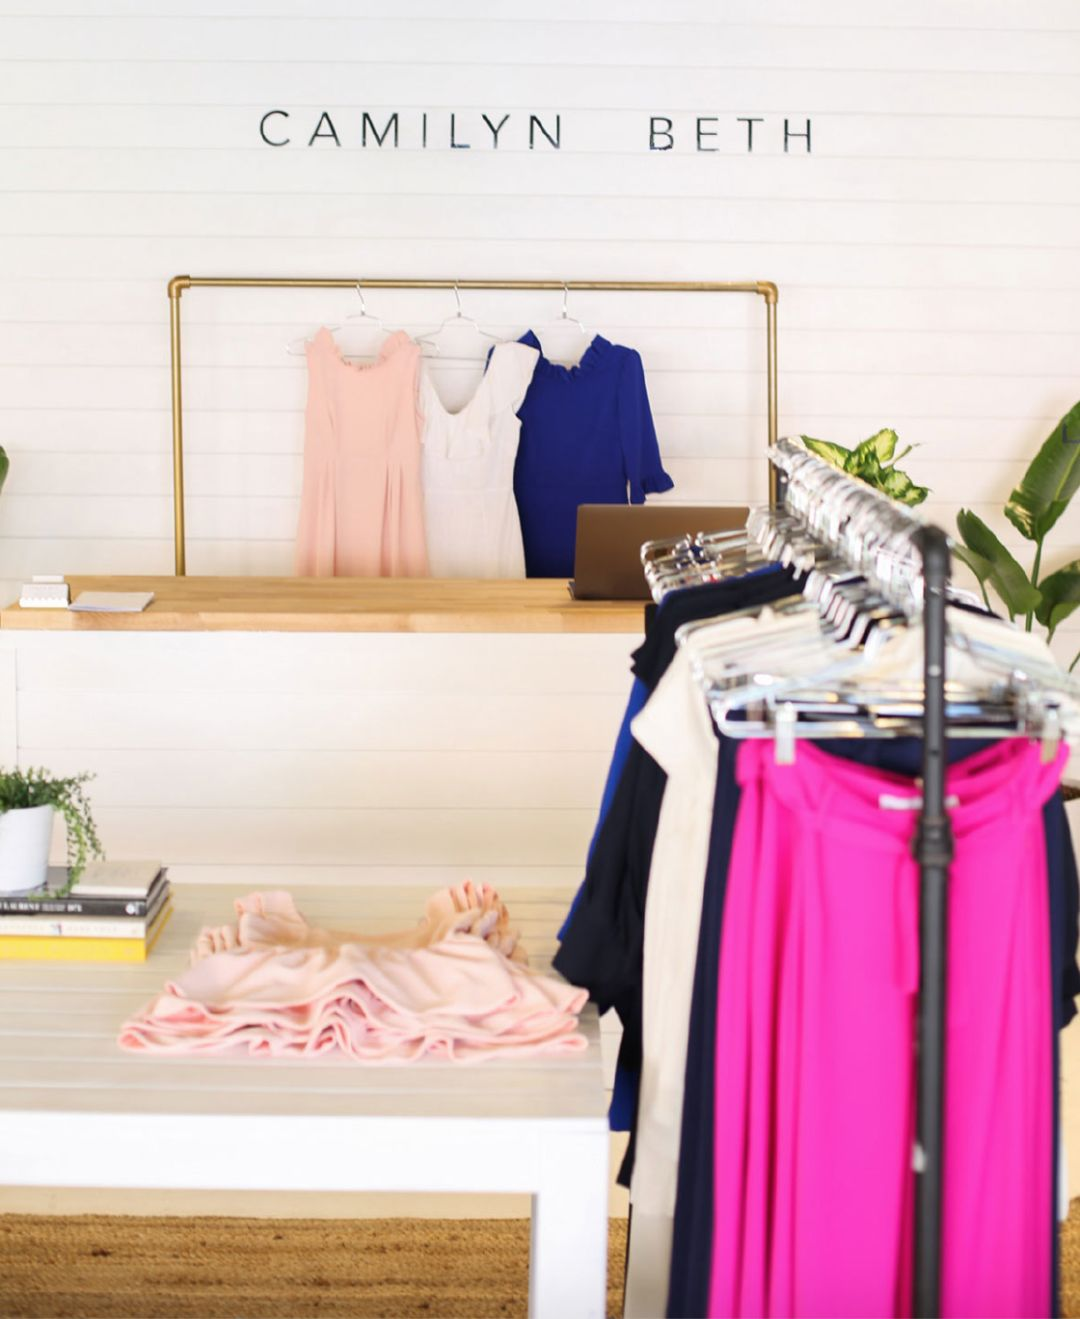 The new Camilyn Beth boutique on Palm Avenue in downtown Sarasota